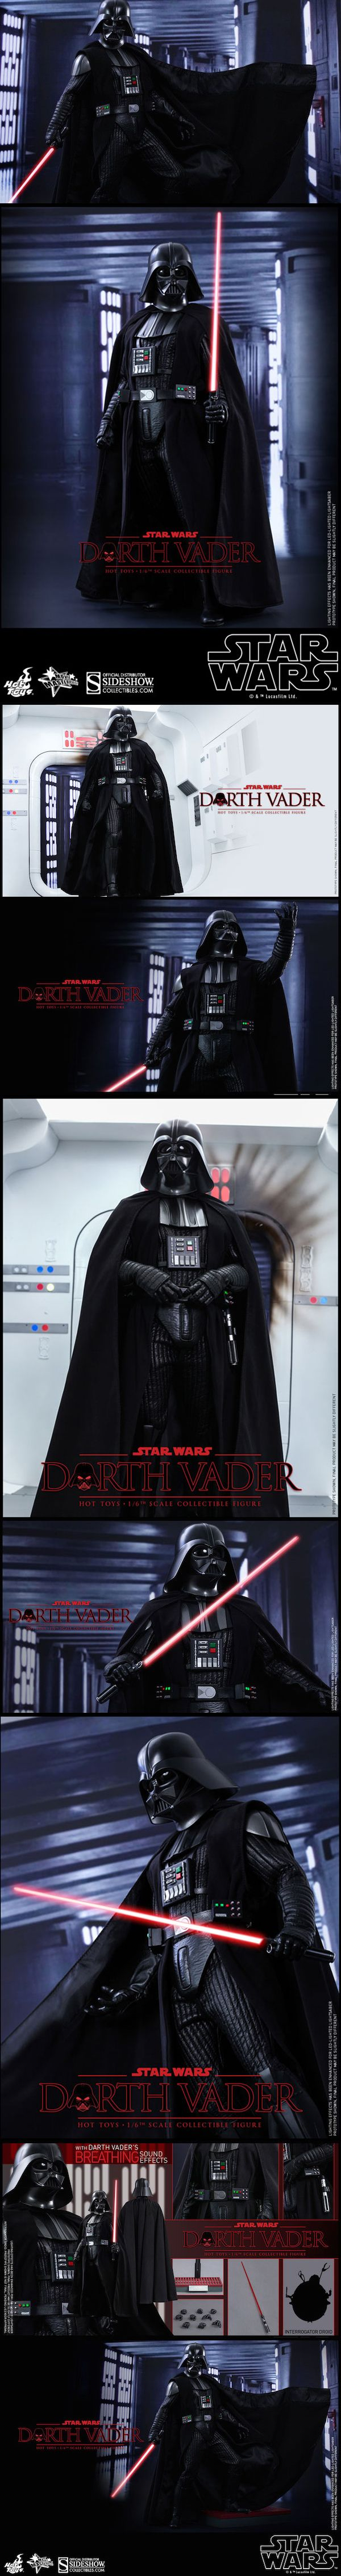 "The New Hot Toys Darth Vader Figure Will Rule Your Toy Shelf This figure includes, ""intricately-constructed Darth Vader armor and helmet, specially tailored suit, built-in sound effect function with Darth Vader's breathing sound, LED-lighted lightsaber and belt, a finely made Interrogator Droid, and a specially designed figure stand."" Read more at http://nerdapproved.com/approved-products/the-new-hoy-toys-darth-vader-will-rule-your-toy-shelf/#6XXHltwRuWfdVGU5.99"